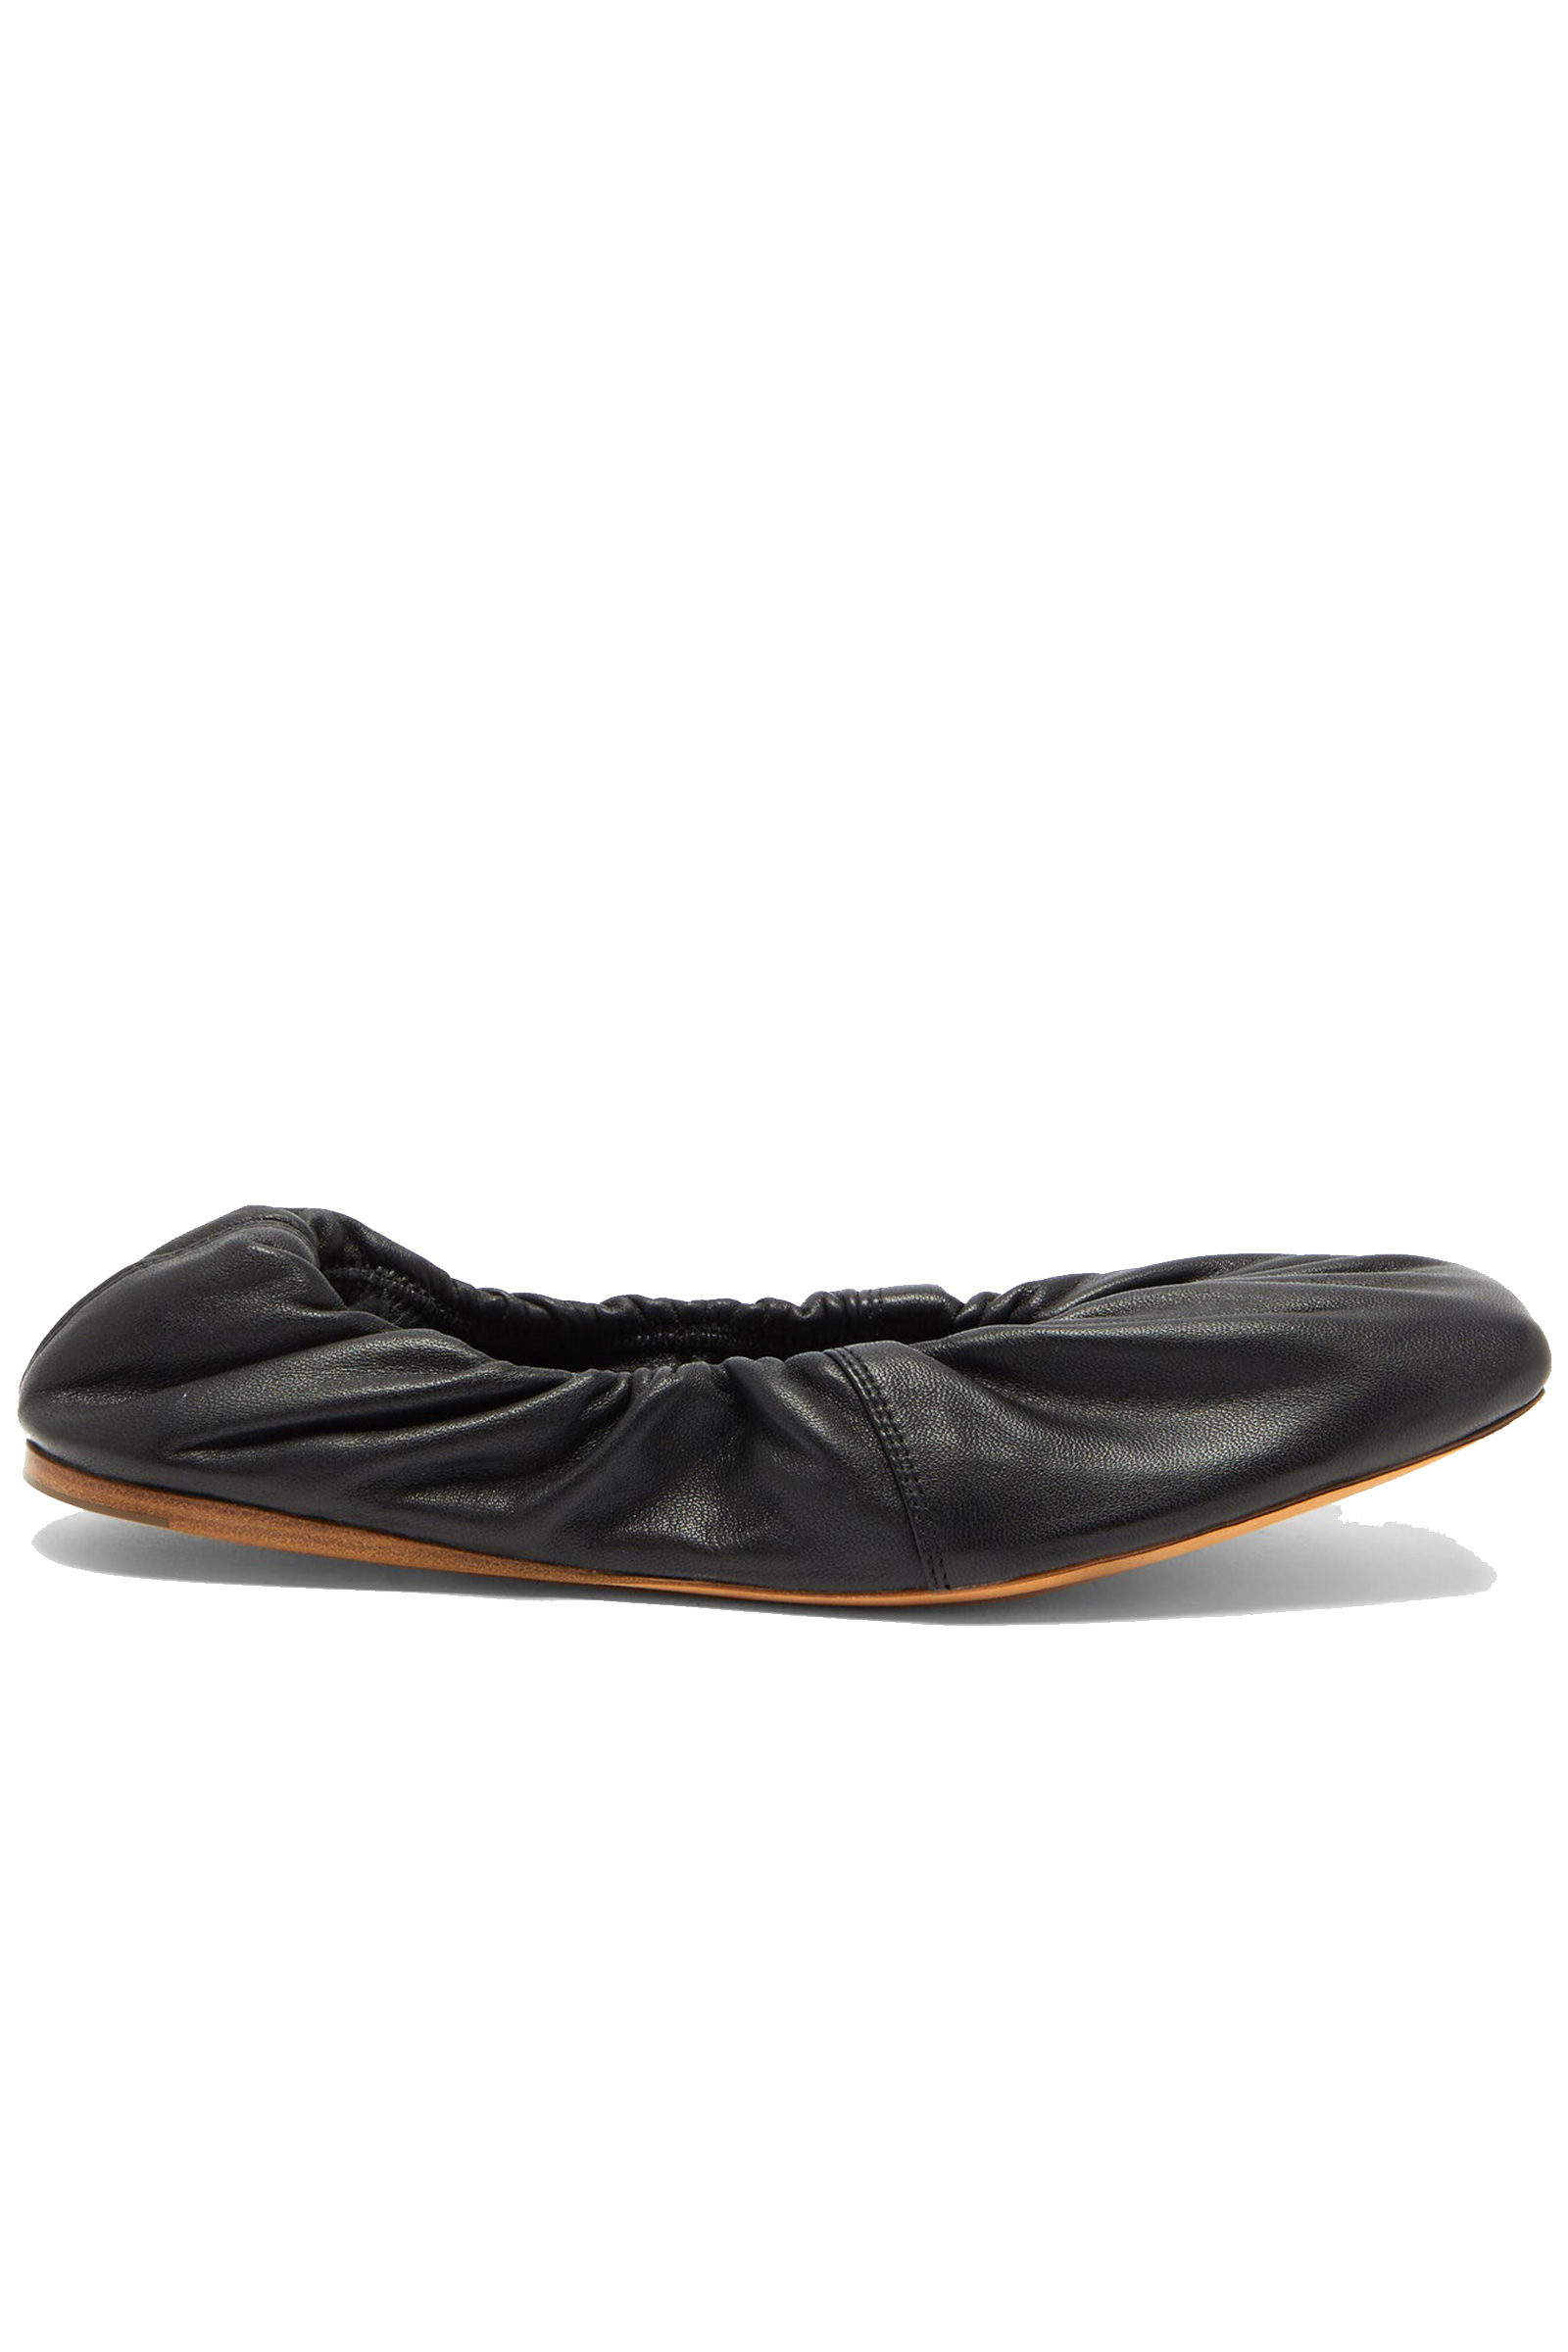 Flat Shoes on sale for women - Buy